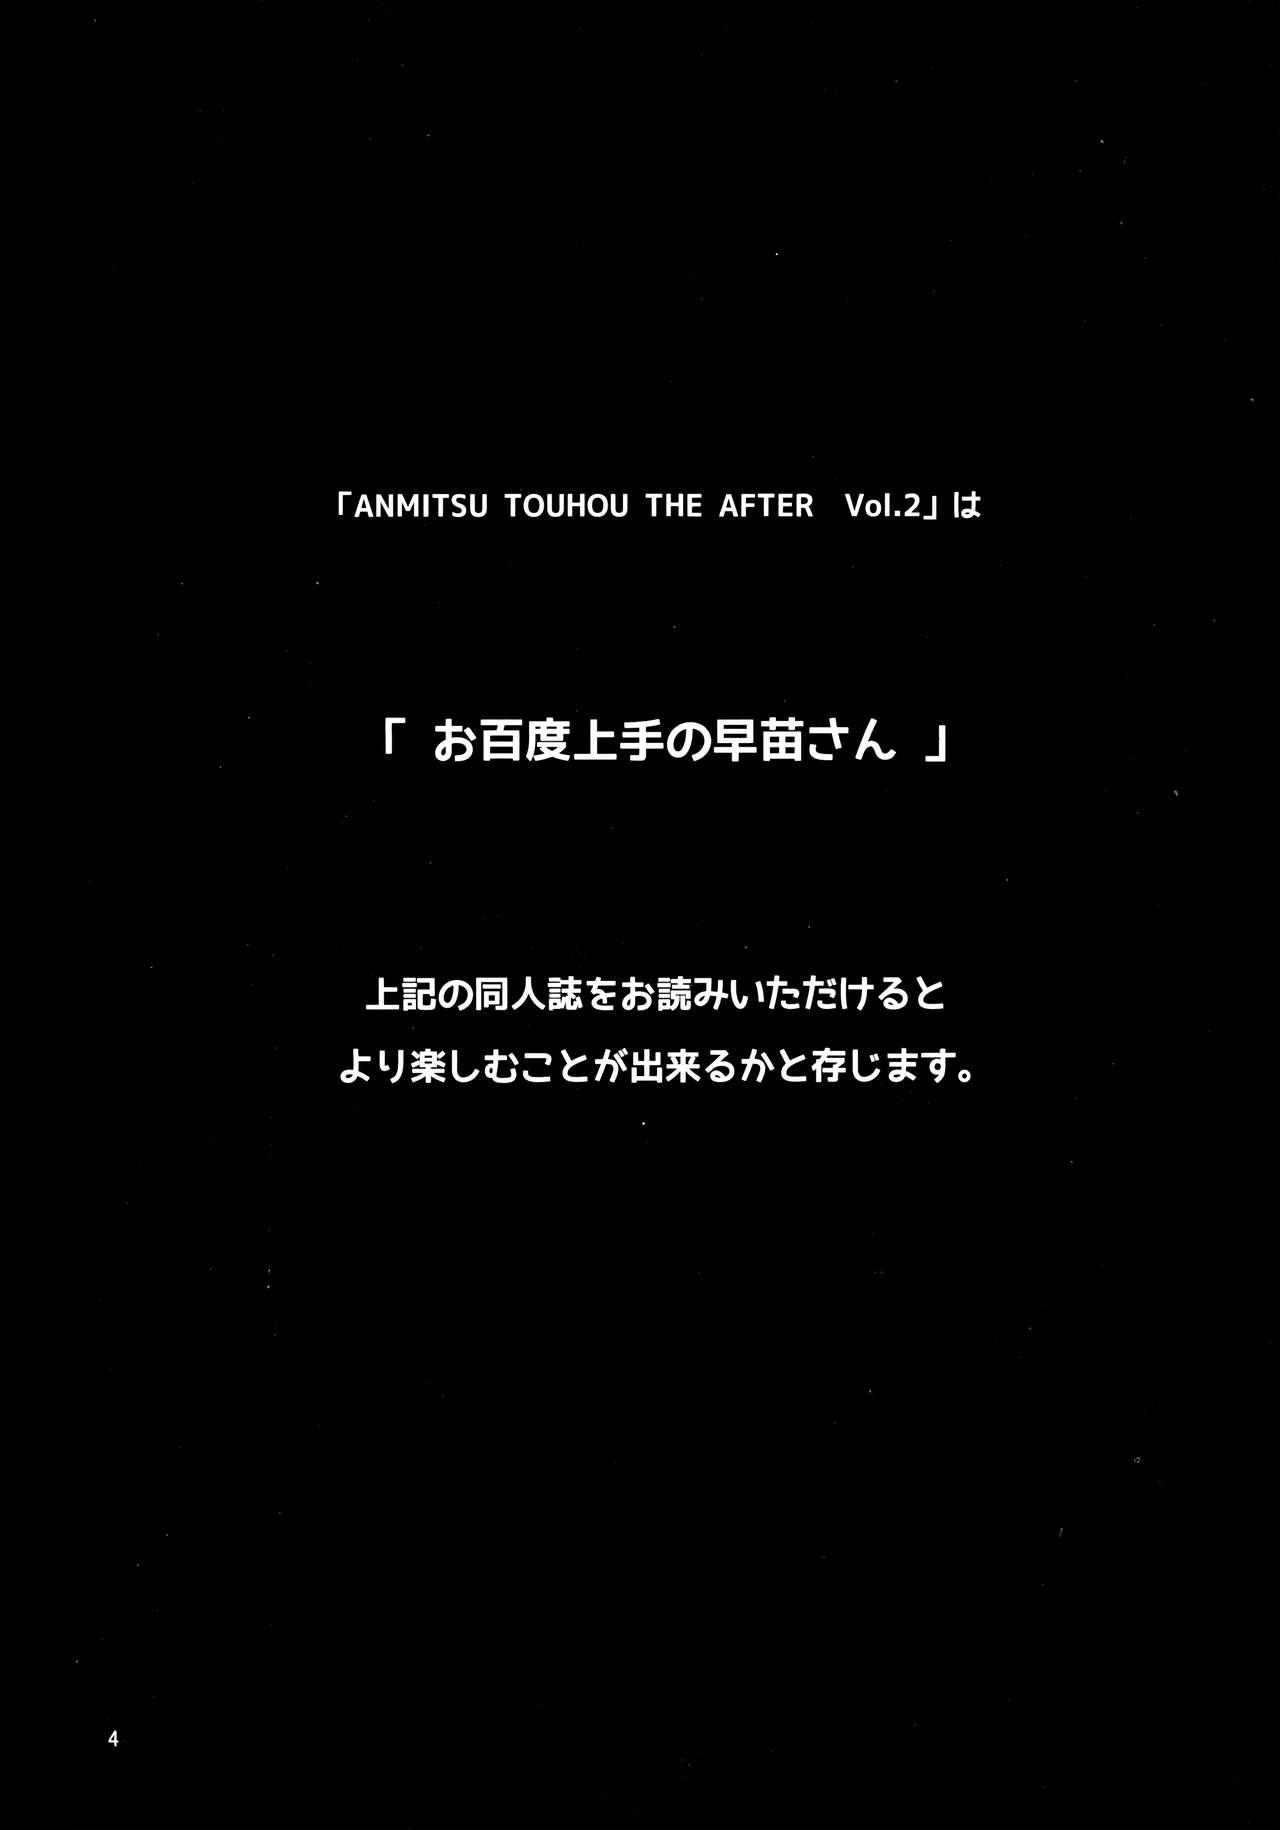 ANMITSU TOUHOU THE AFTER Vol.2 2